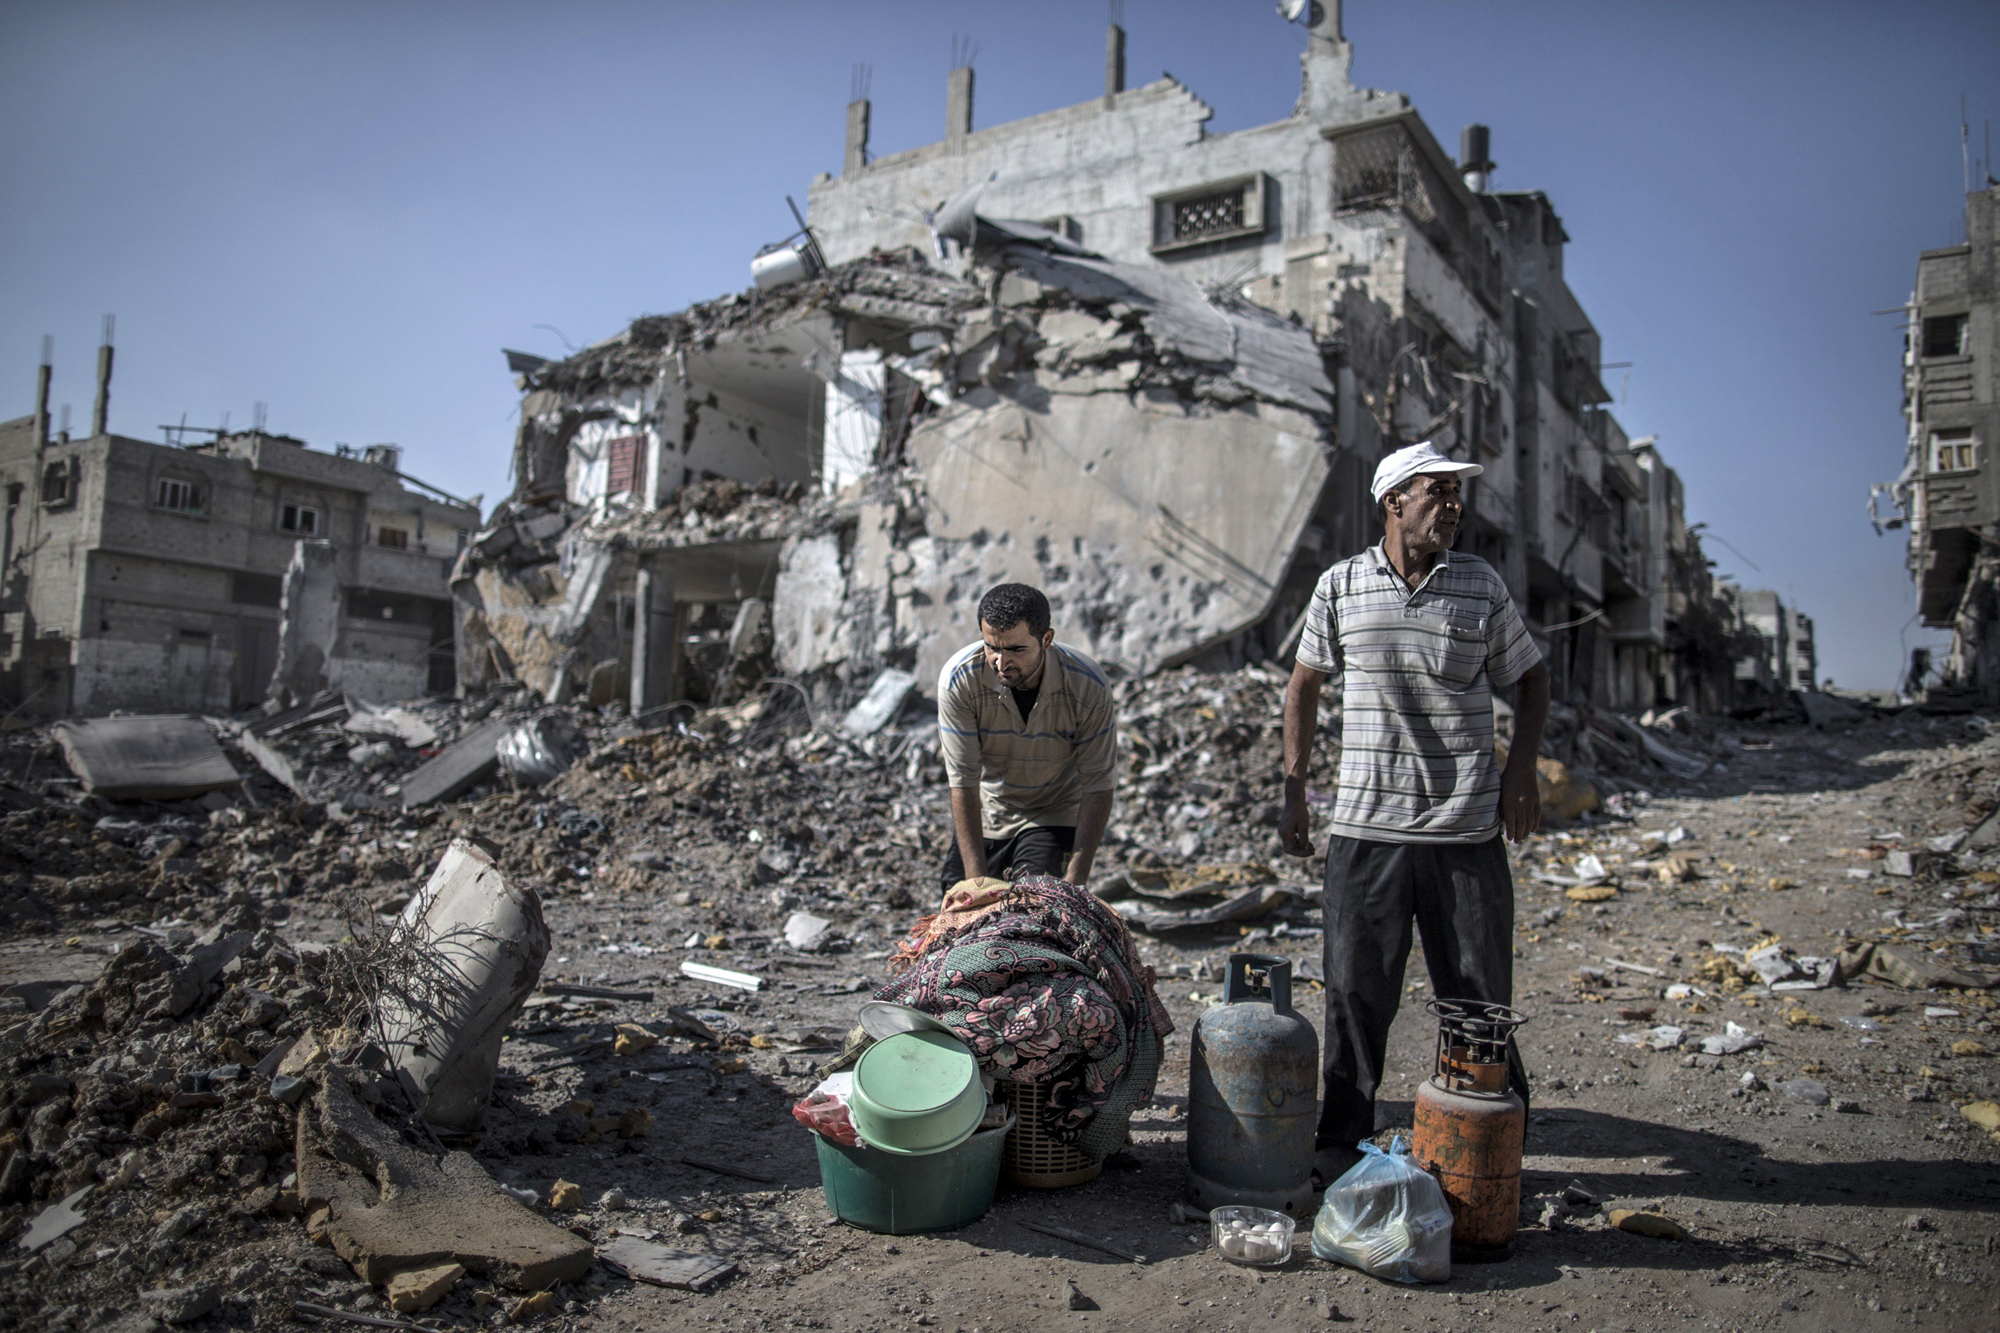 Palestinian men gather things they found in the rubble of destroyed buildings on July 27, 2014 in the Shejaiya residential district of Gaza City as families returned to find their homes ground into rubble by relentless Israeli tank fire and air strikes.